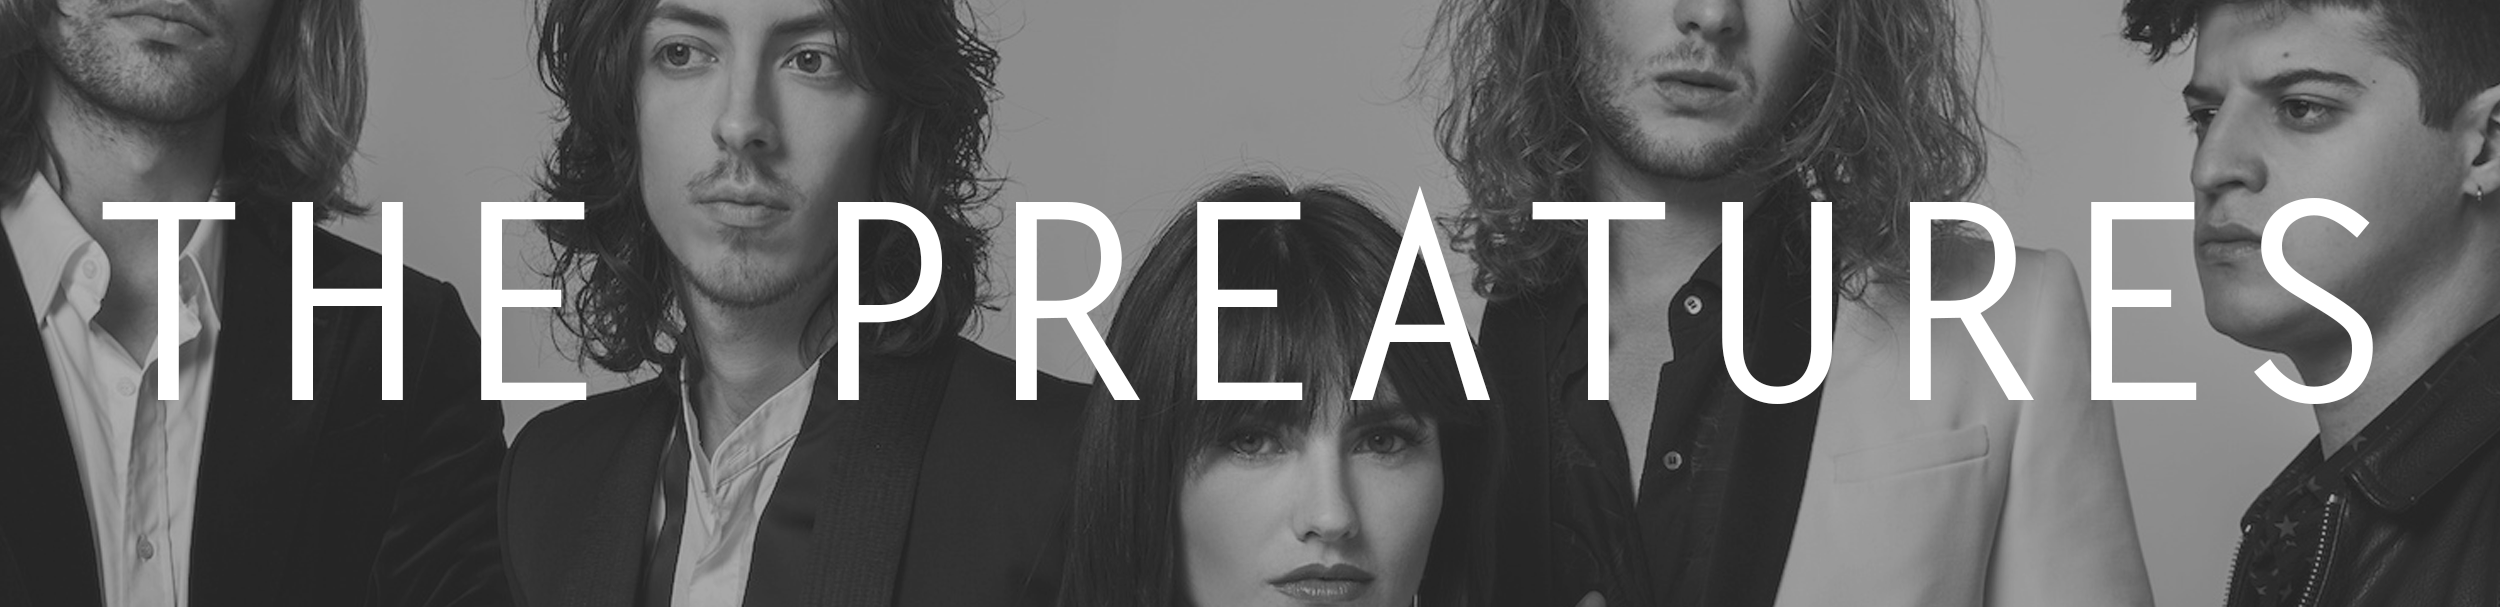 THE PREATURES.png